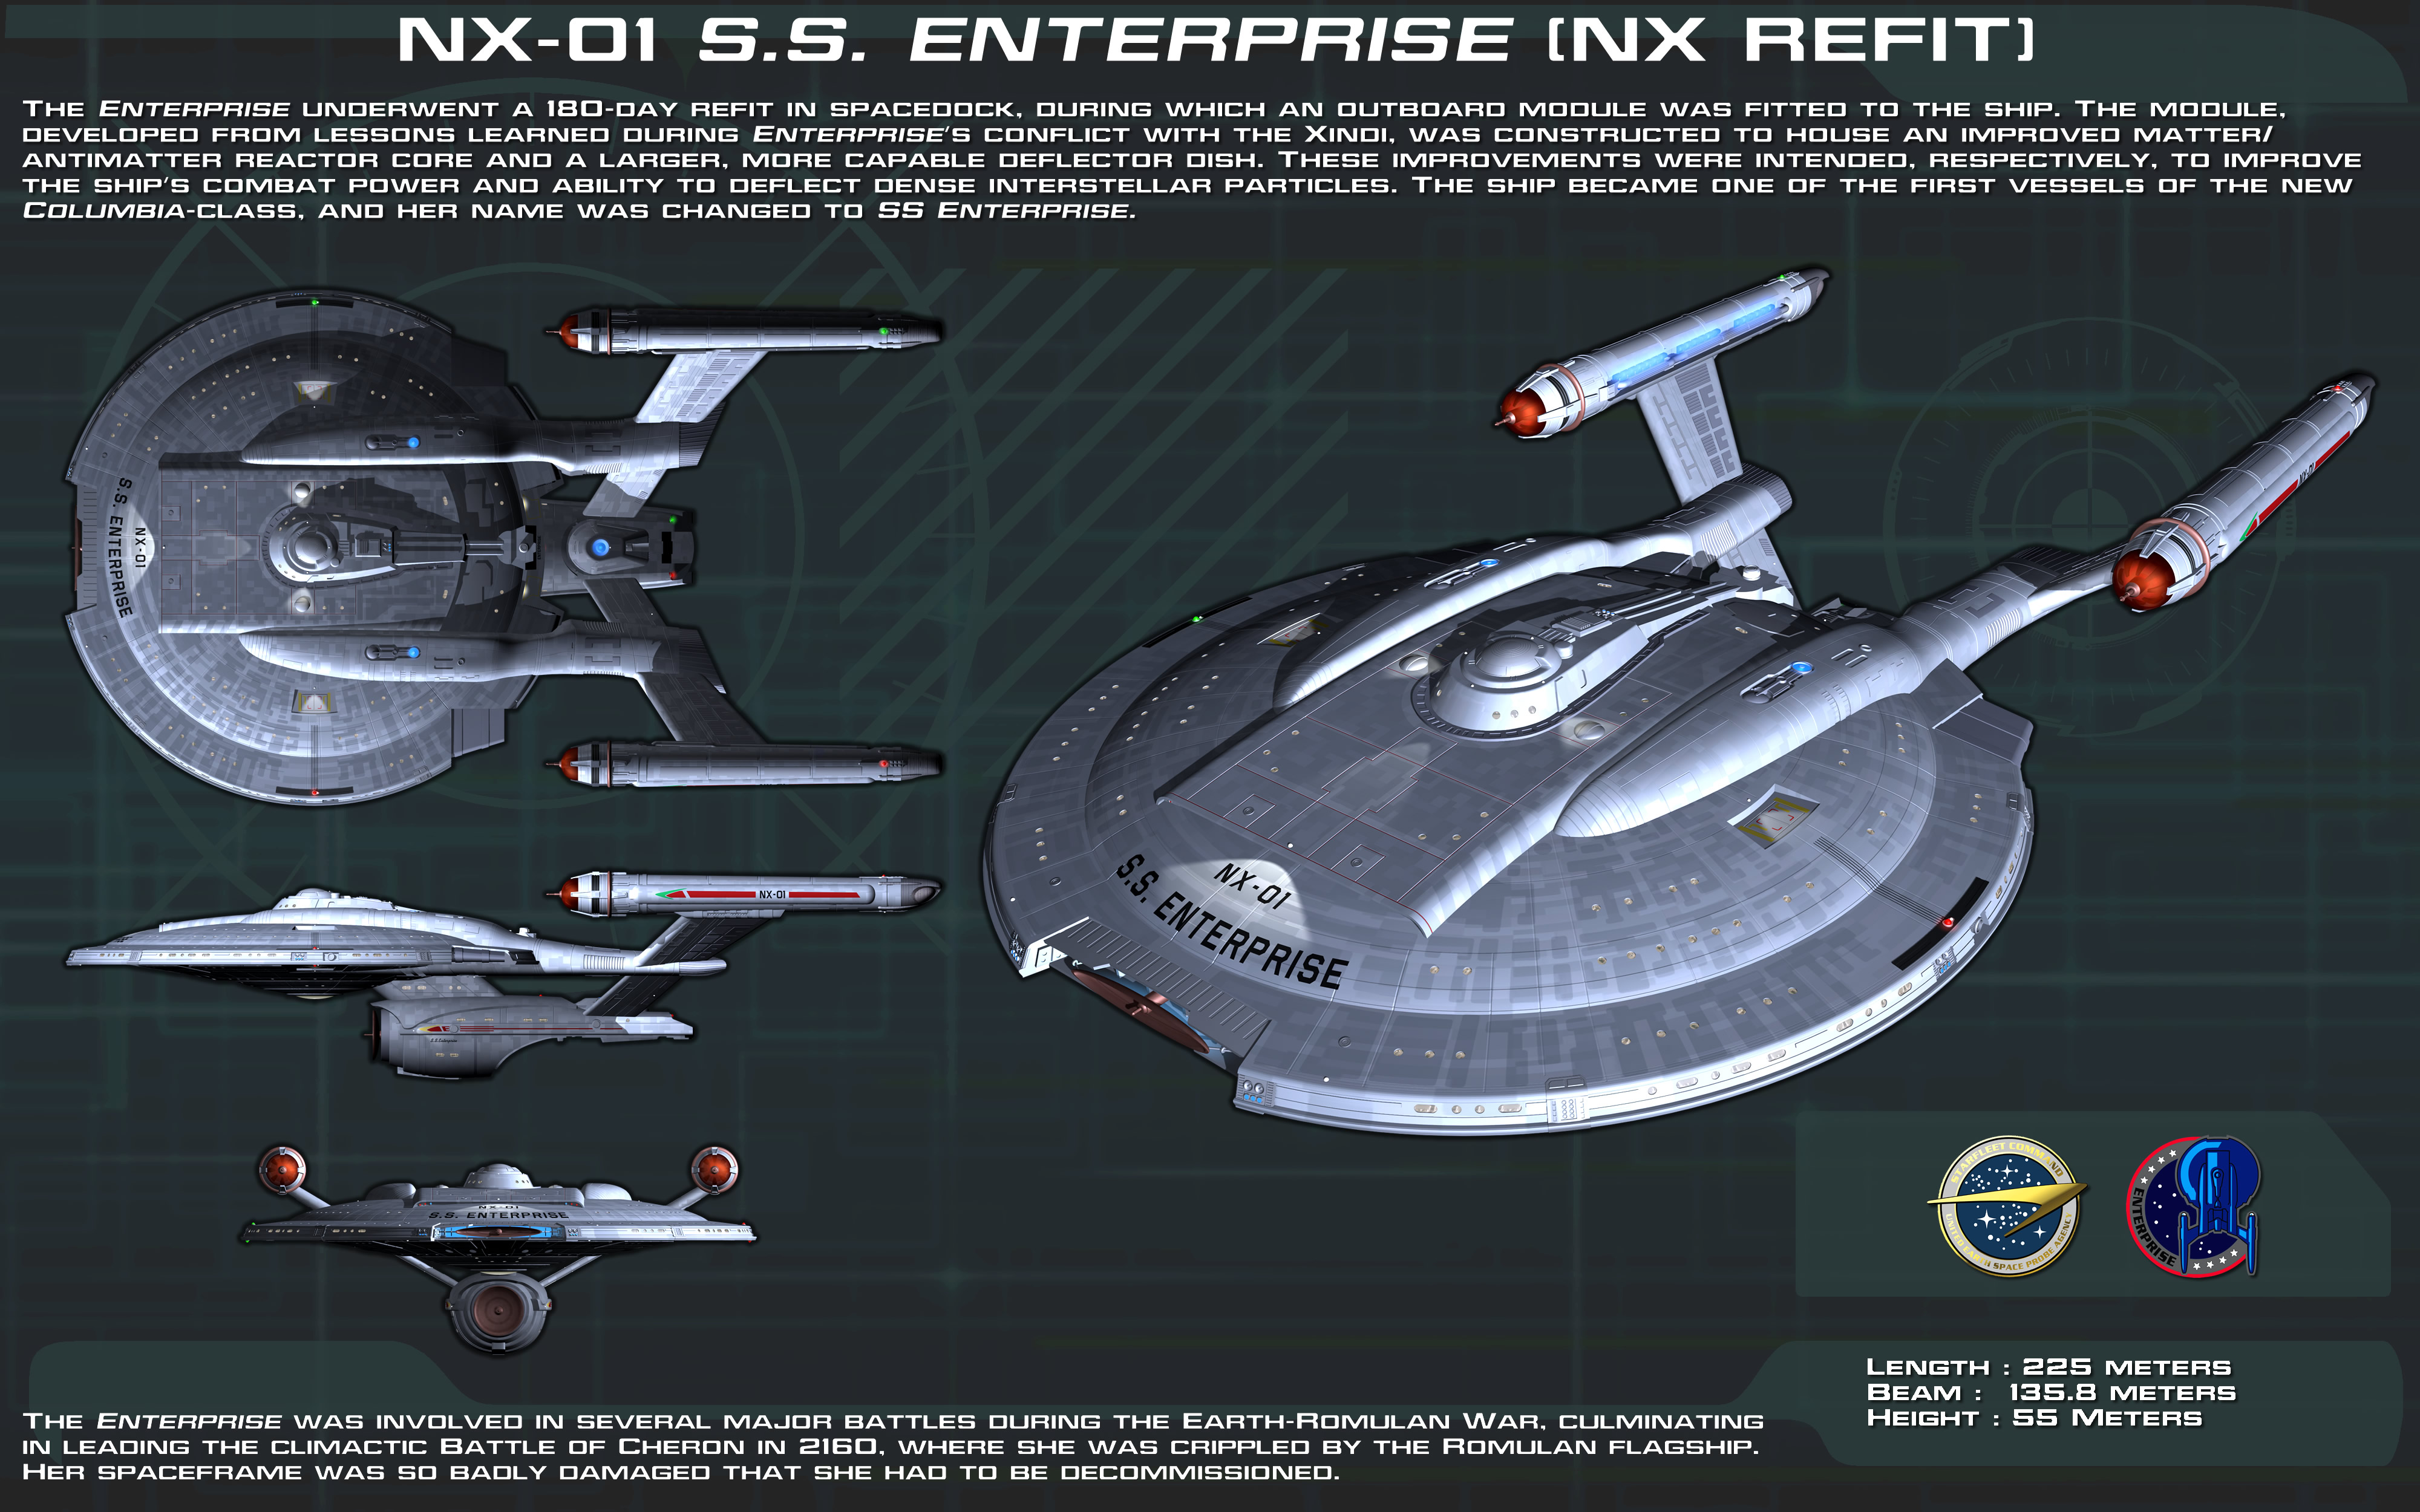 NX class ortho [New] by unusualsuspex on DeviantArt